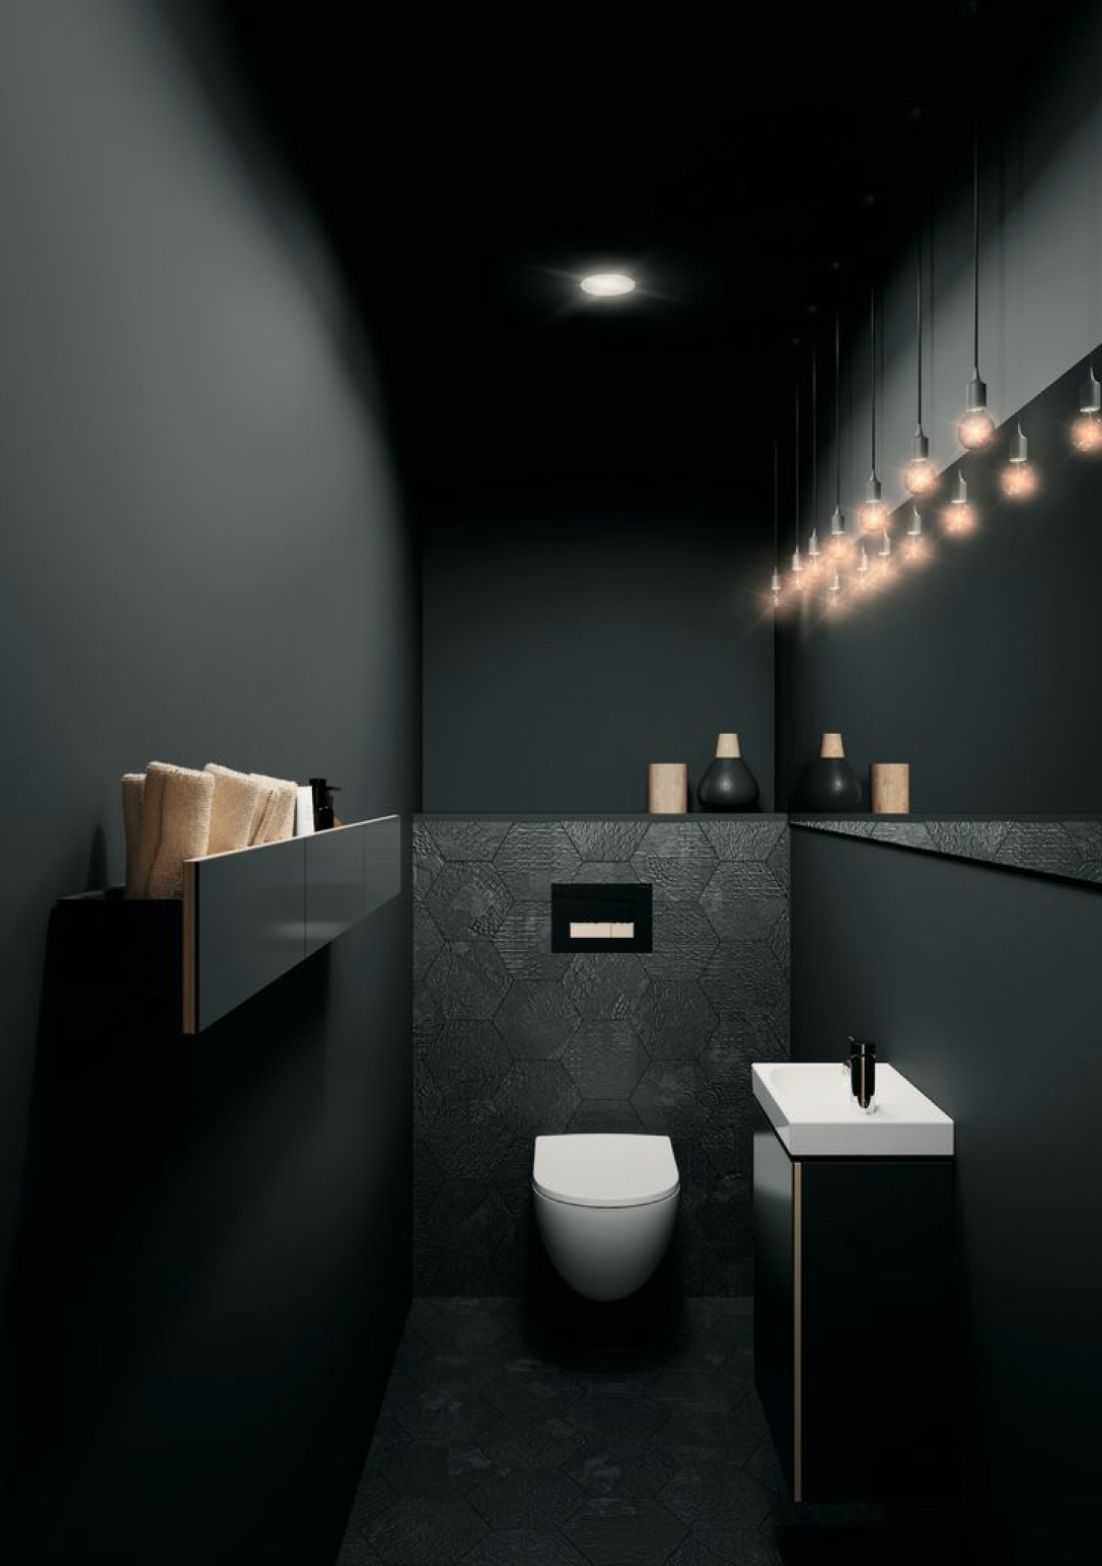 I like charcoal with white & timber. All charcoal is too dark!! #simplebathroomdesigns